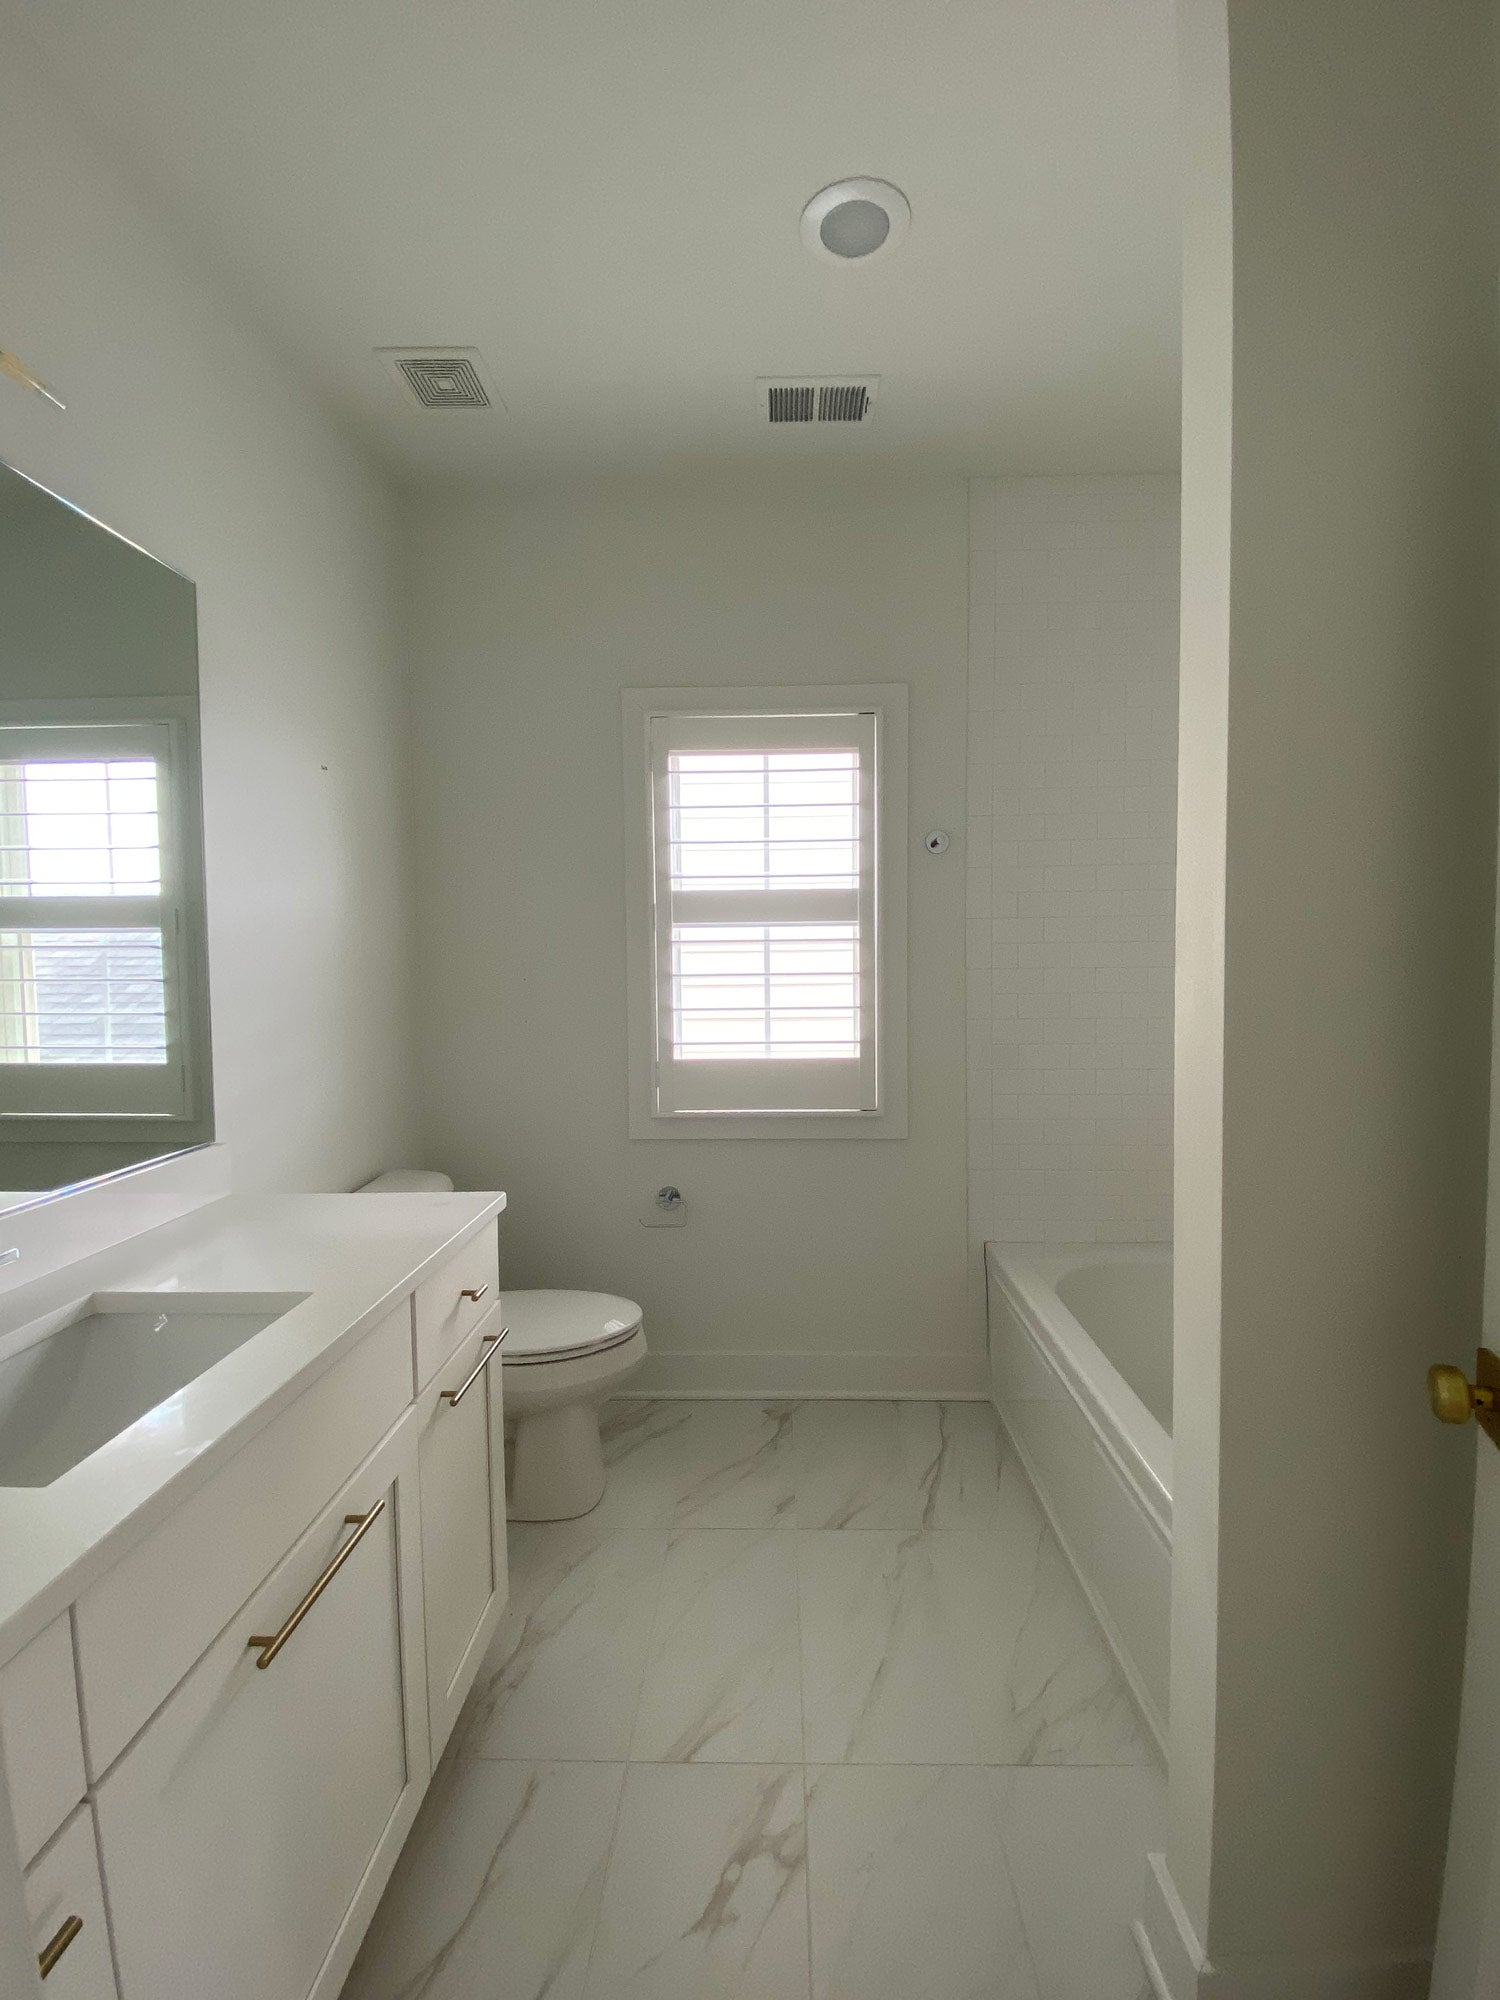 Before and after guest bathroom remodel featuring removable wallpaper designs